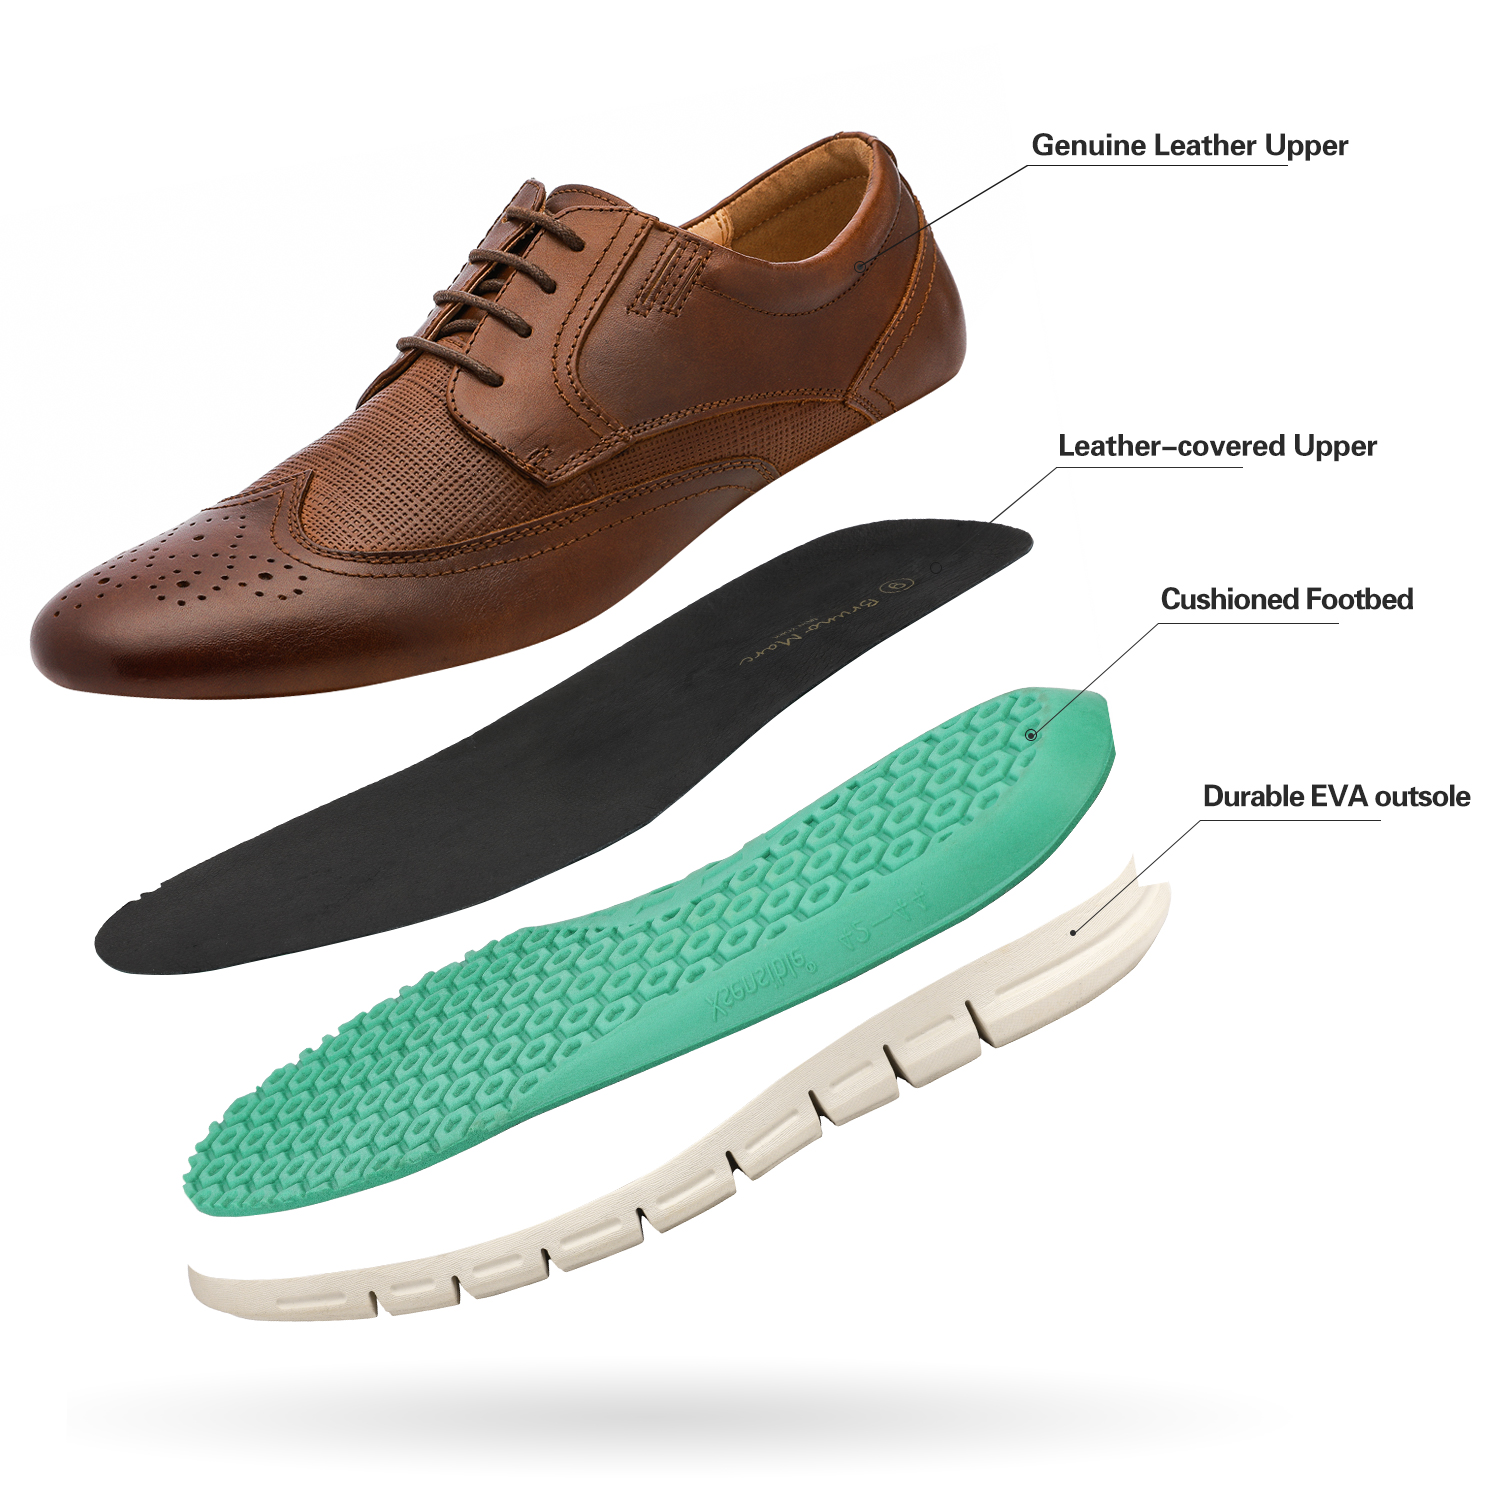 Men-s-Genuine-Leather-Casual-Formal-Sneakers-Lace-up-Business-Oxford-Dress-Shoes thumbnail 30